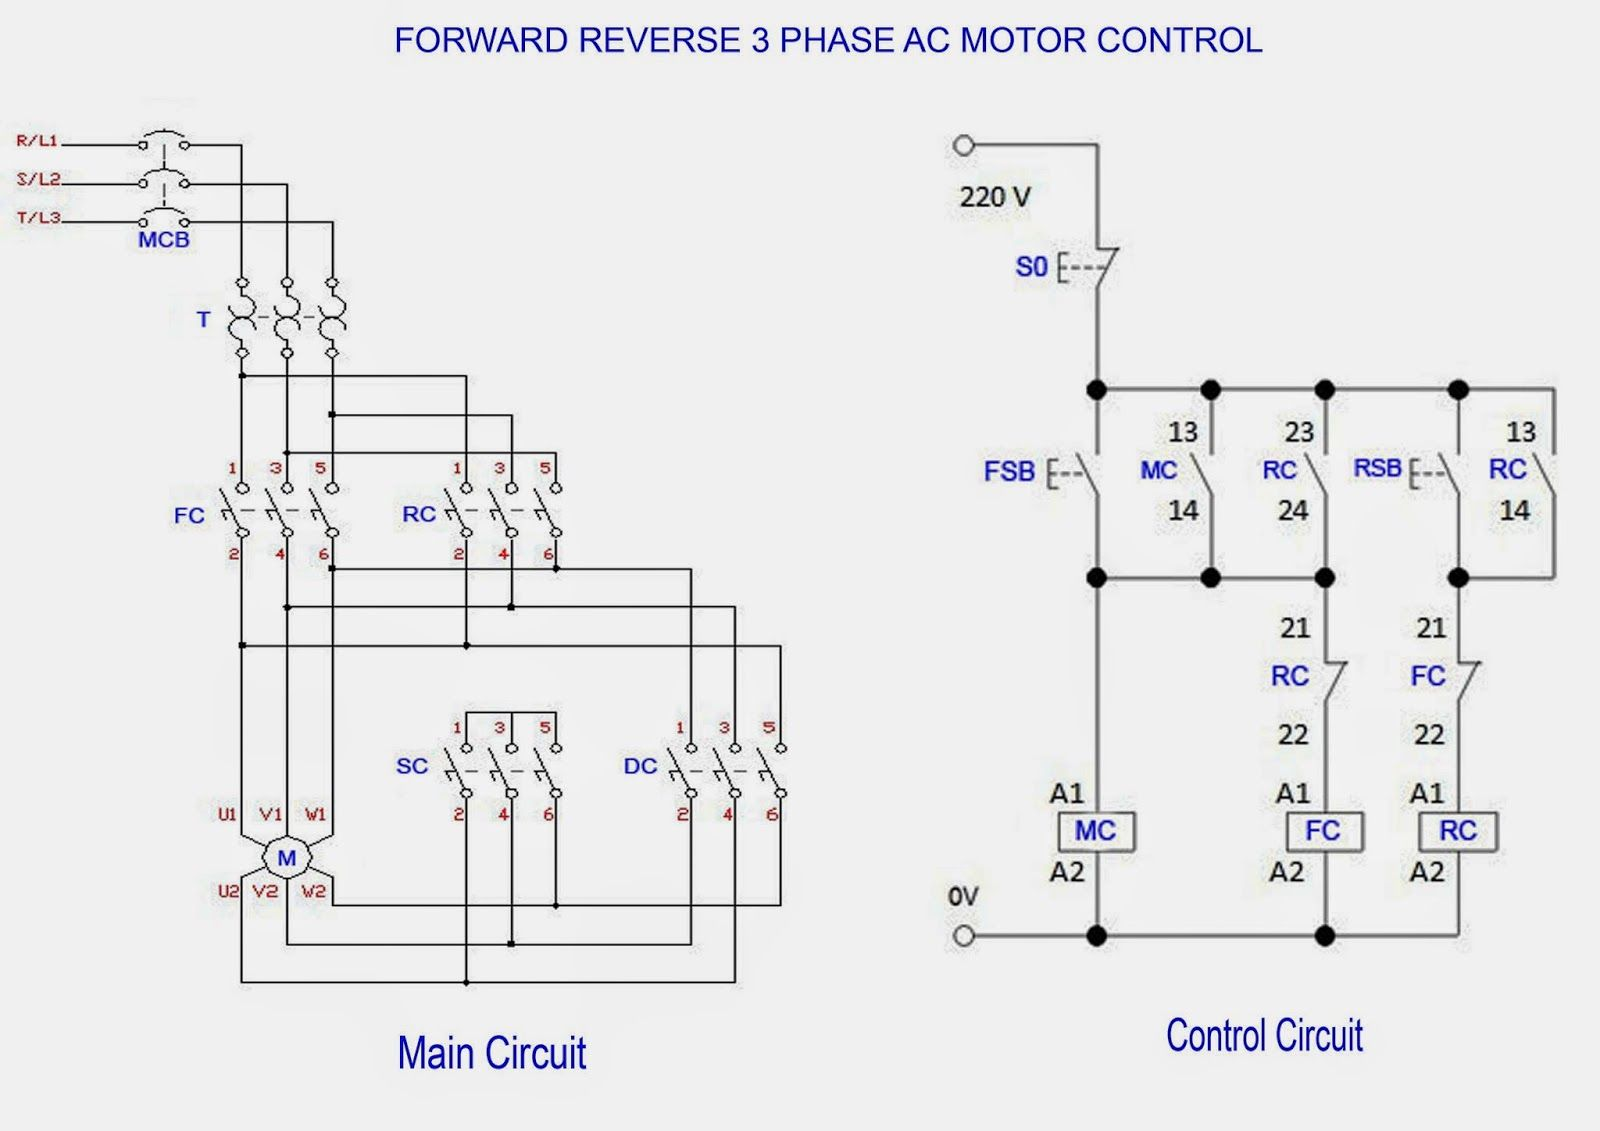 hight resolution of forward reverse 3 phase ac motor control wiring diagram